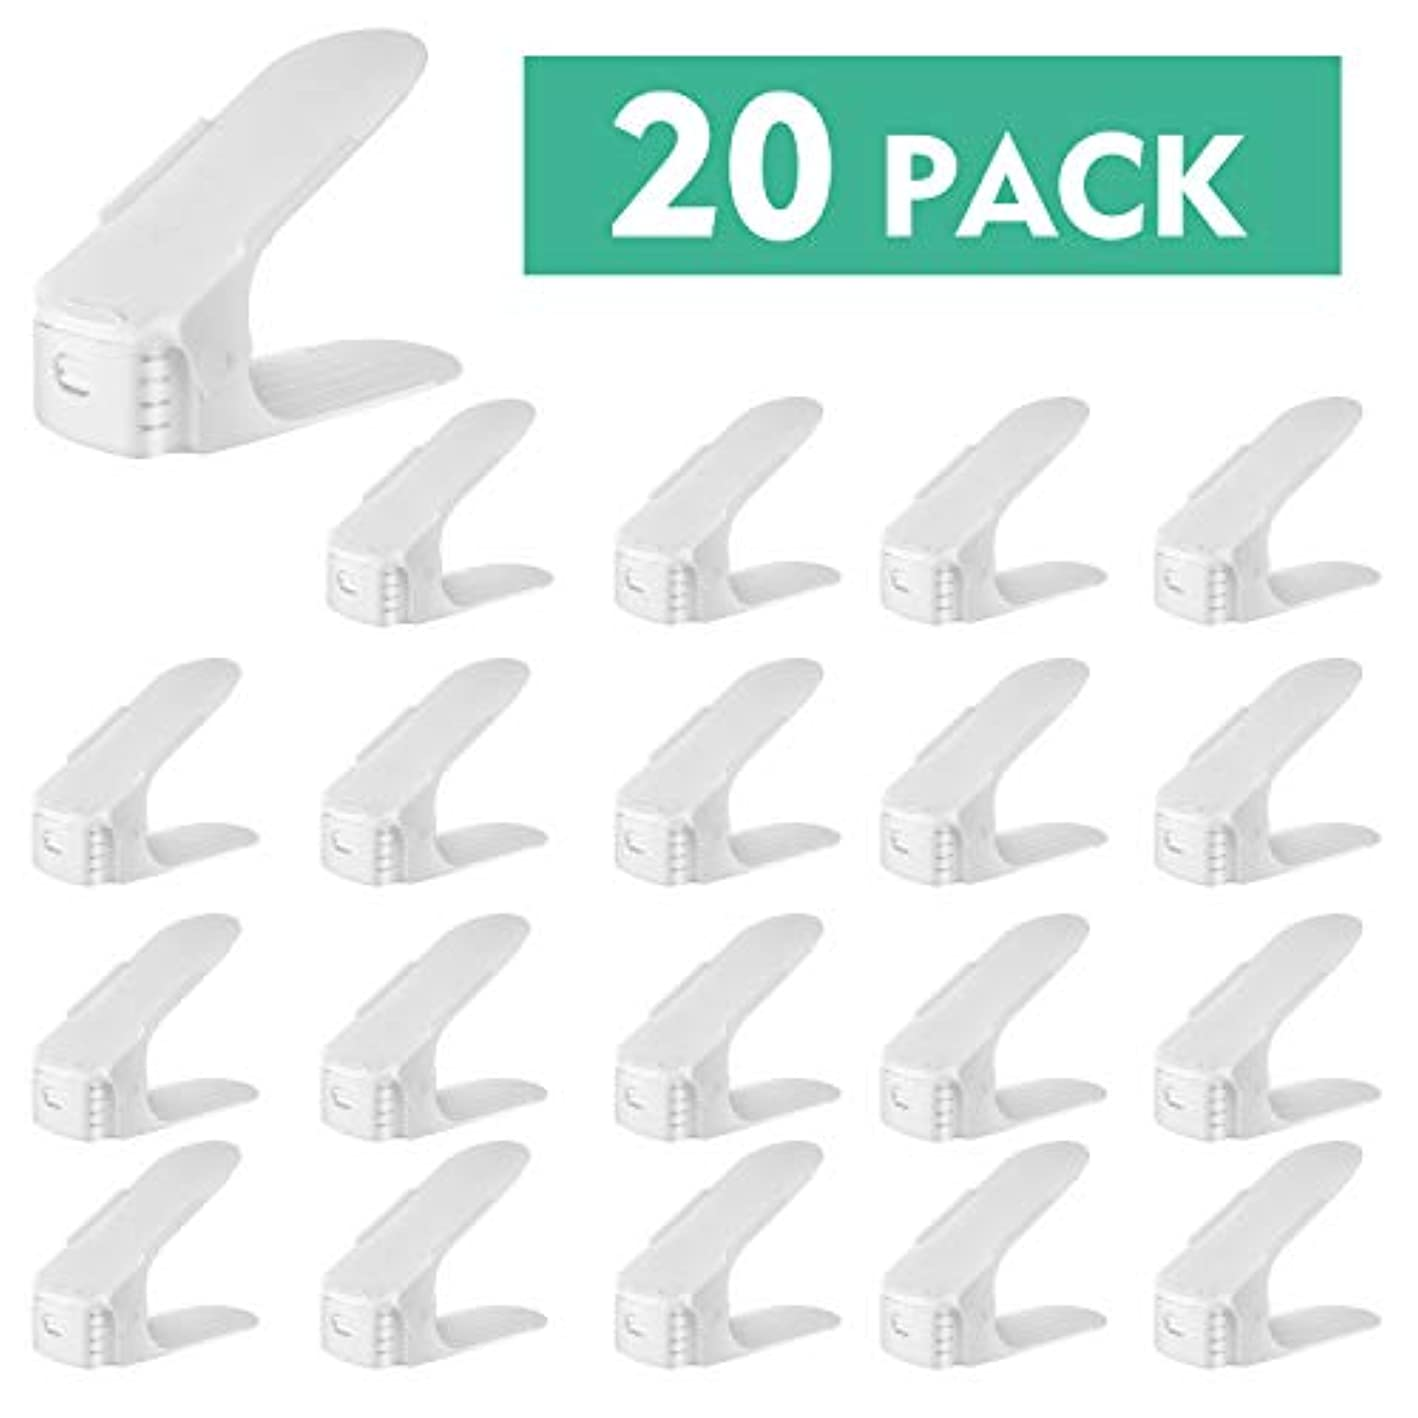 HEMBOR Shoe Slots?Organizer, 3 Step Adjustable Footwear Rack Holder, Double Layer Space Saver Storage Stacker, Suitable for Men's Women's High Low Shoes for Home Closet Indoor (20 Pack) (White)